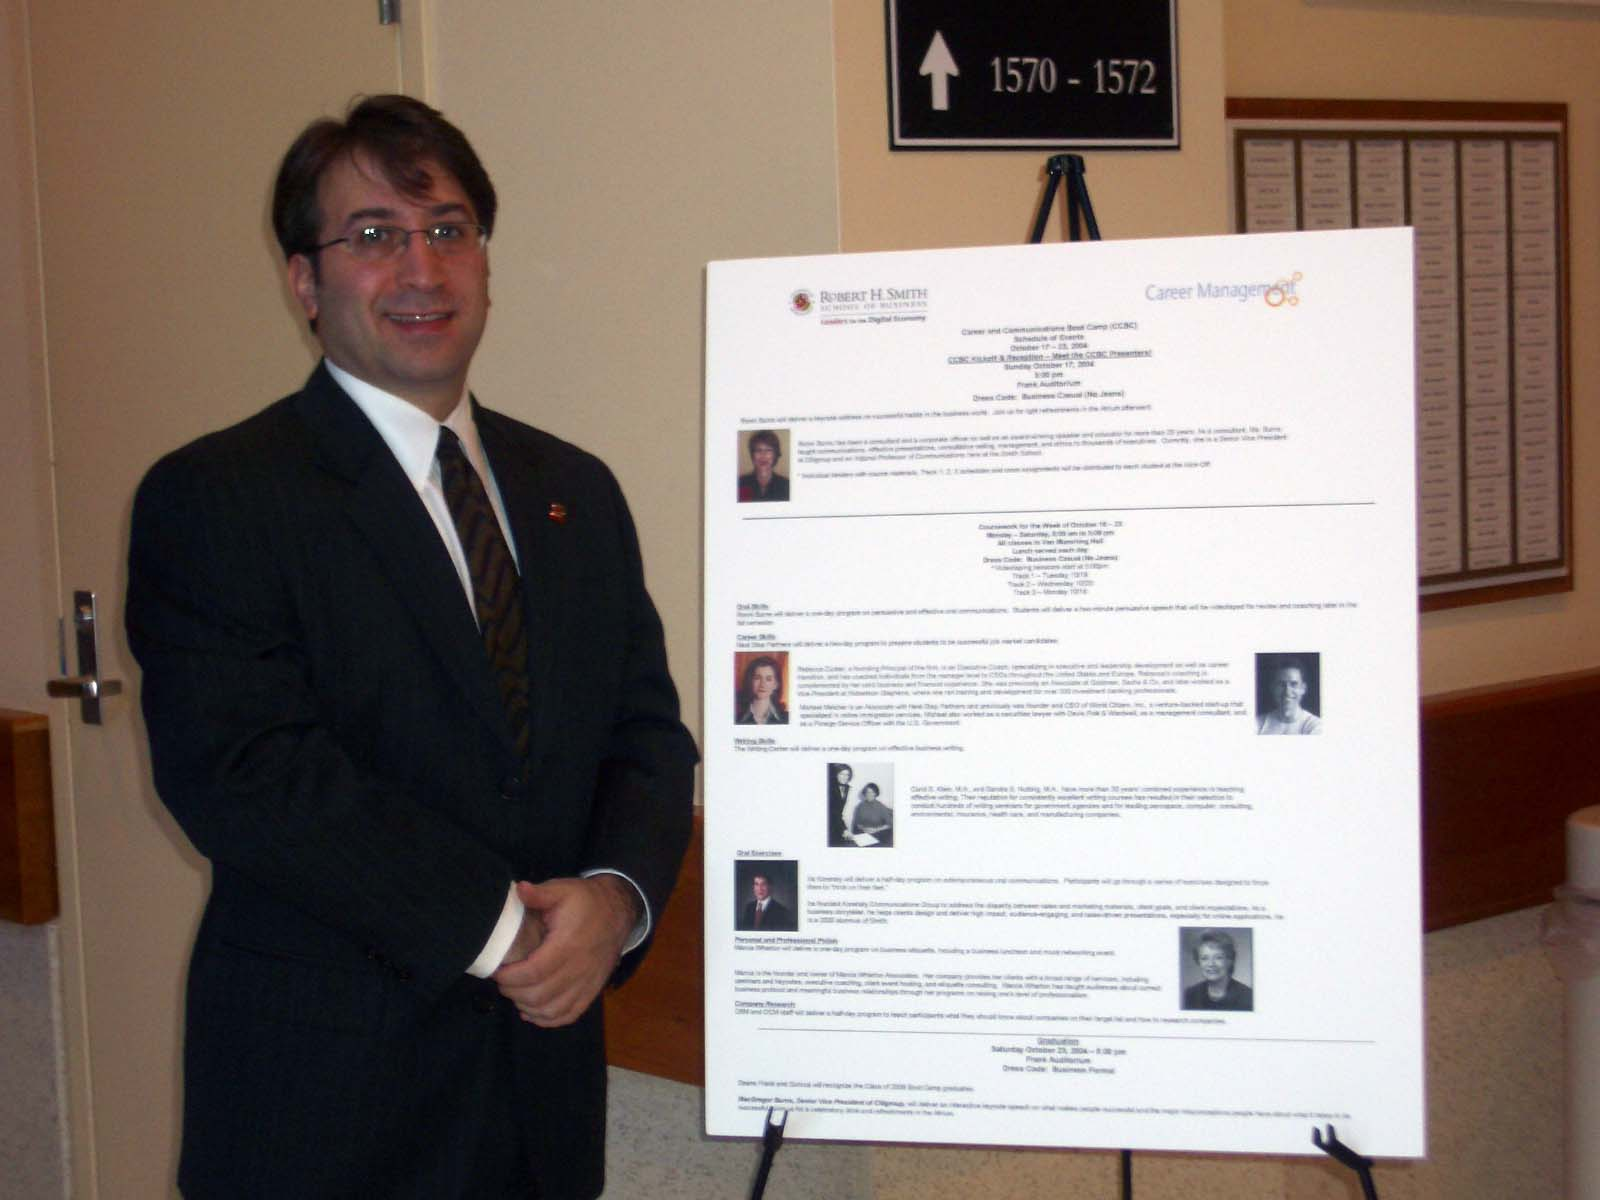 picture of ira koretsy, ceo, the chief storyteller, standing in front of the conference agenda at the robert h smith school of business at the university of maryland